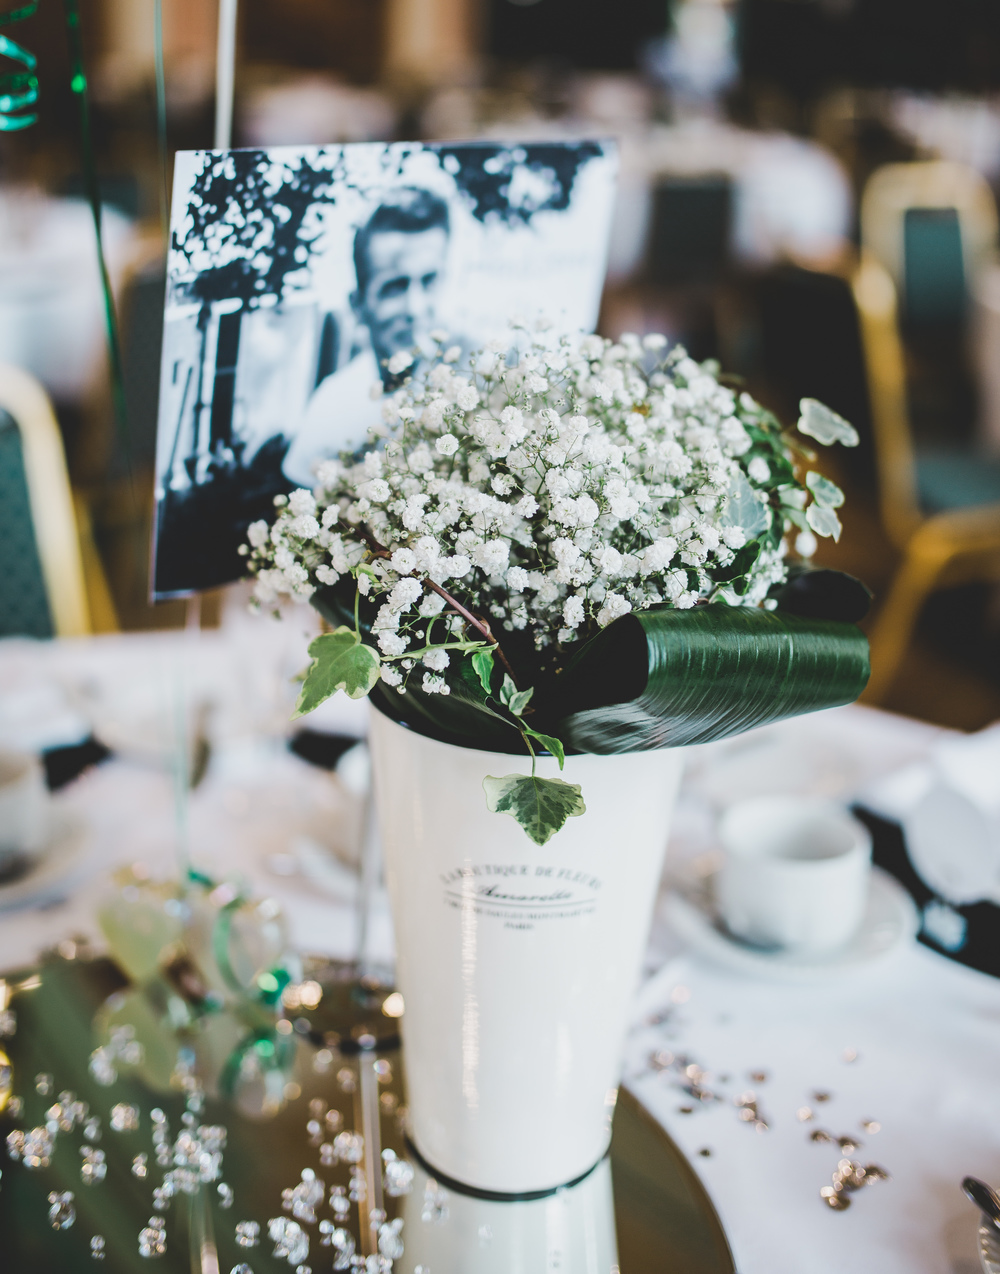 Beautiful table flowers surrounding an old photograph of the groom.